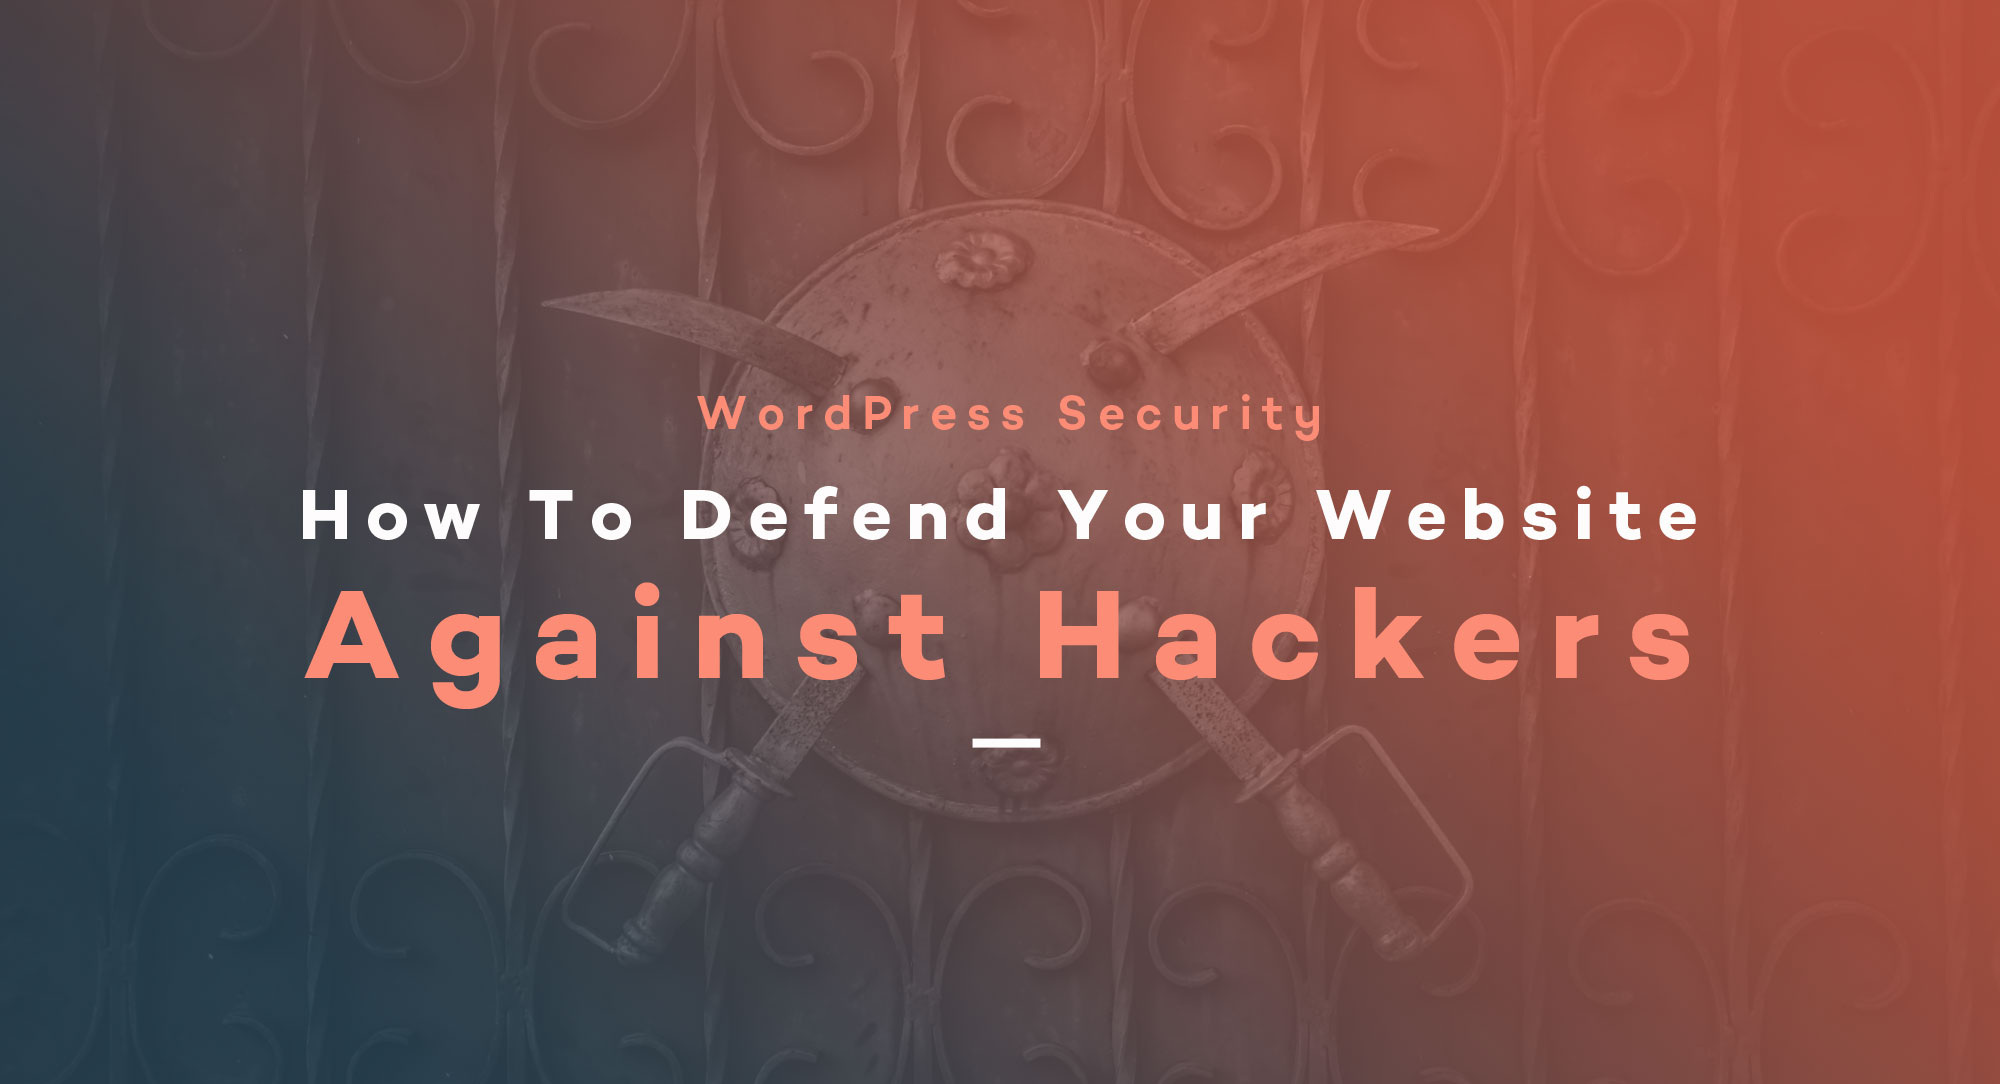 How-to-defend-your-website-against-hackers